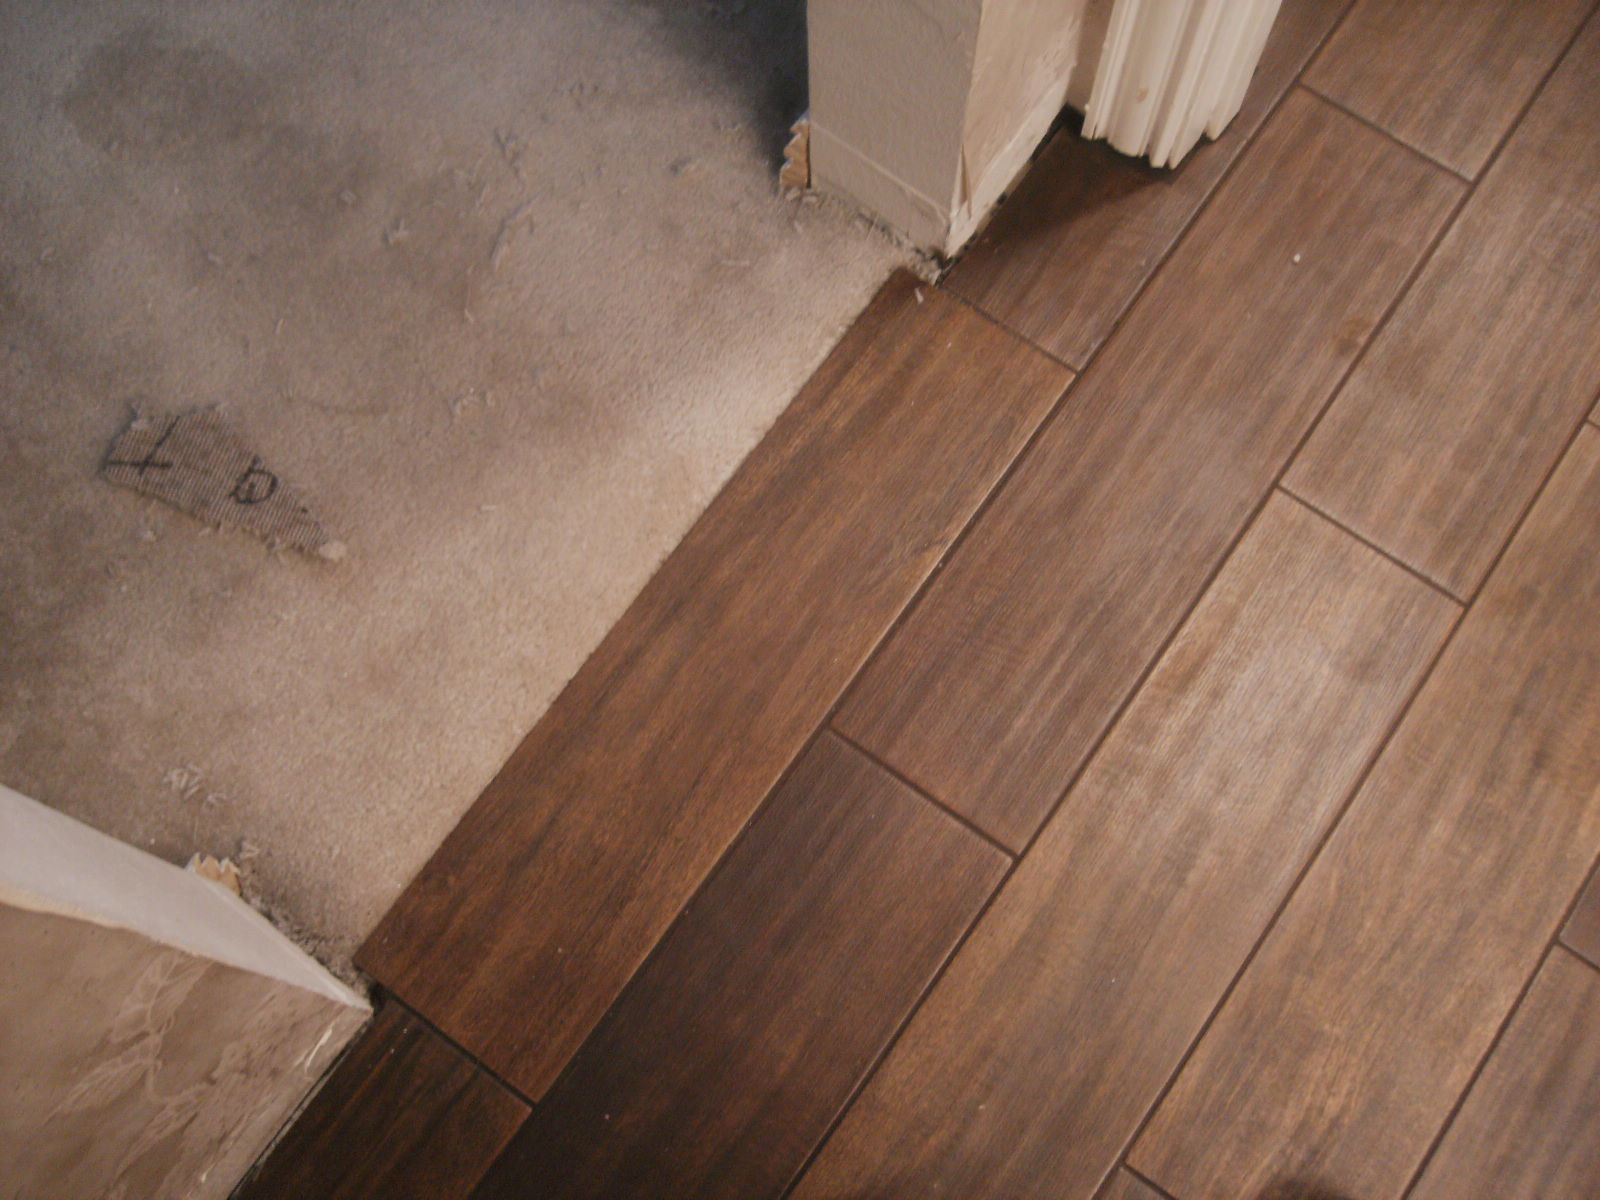 Is It Wood Flooring Or Is It Porcelain Tile